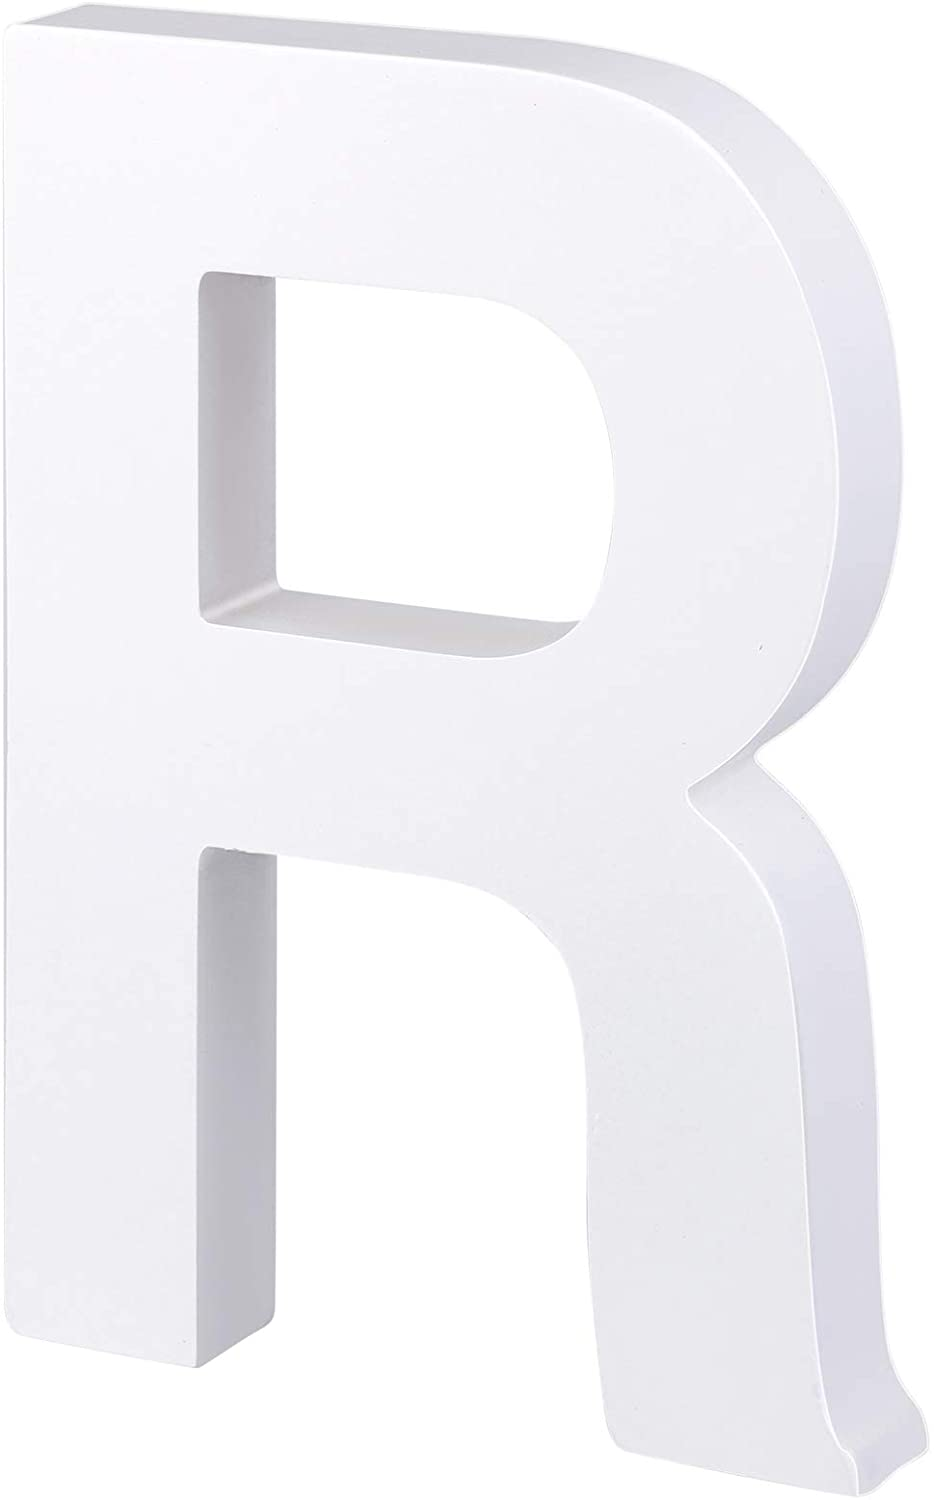 RUODON White Decorative Wood Letters Hanging Wall 26 Letters DIY Decoration for Home Bedroom Office Wedding Party, 7.9 x 0.8 Inch